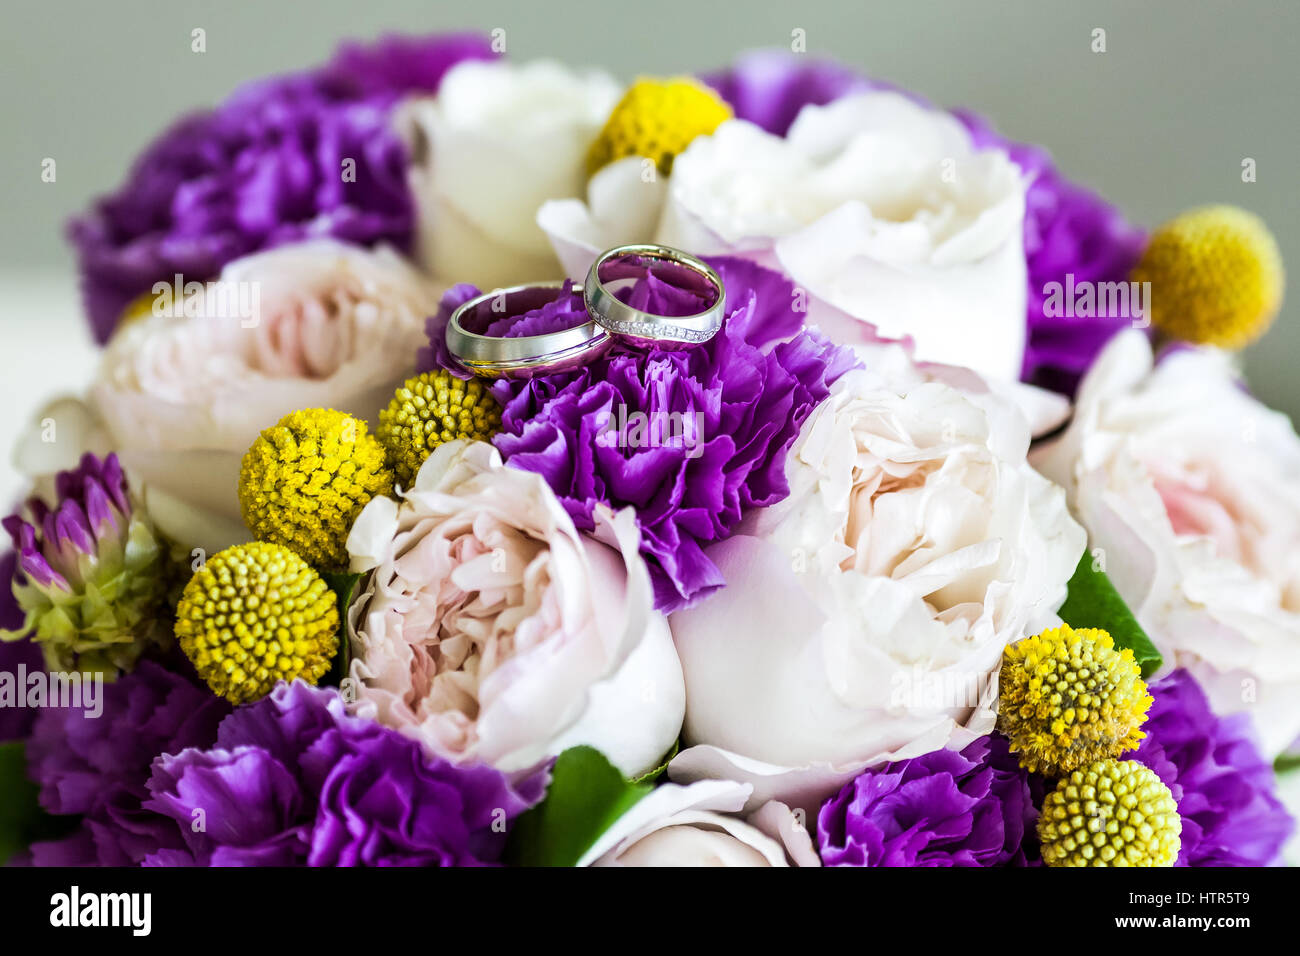 Wedding Rings On Bouquet Of Pink And Purple Flowers In Blue Vase